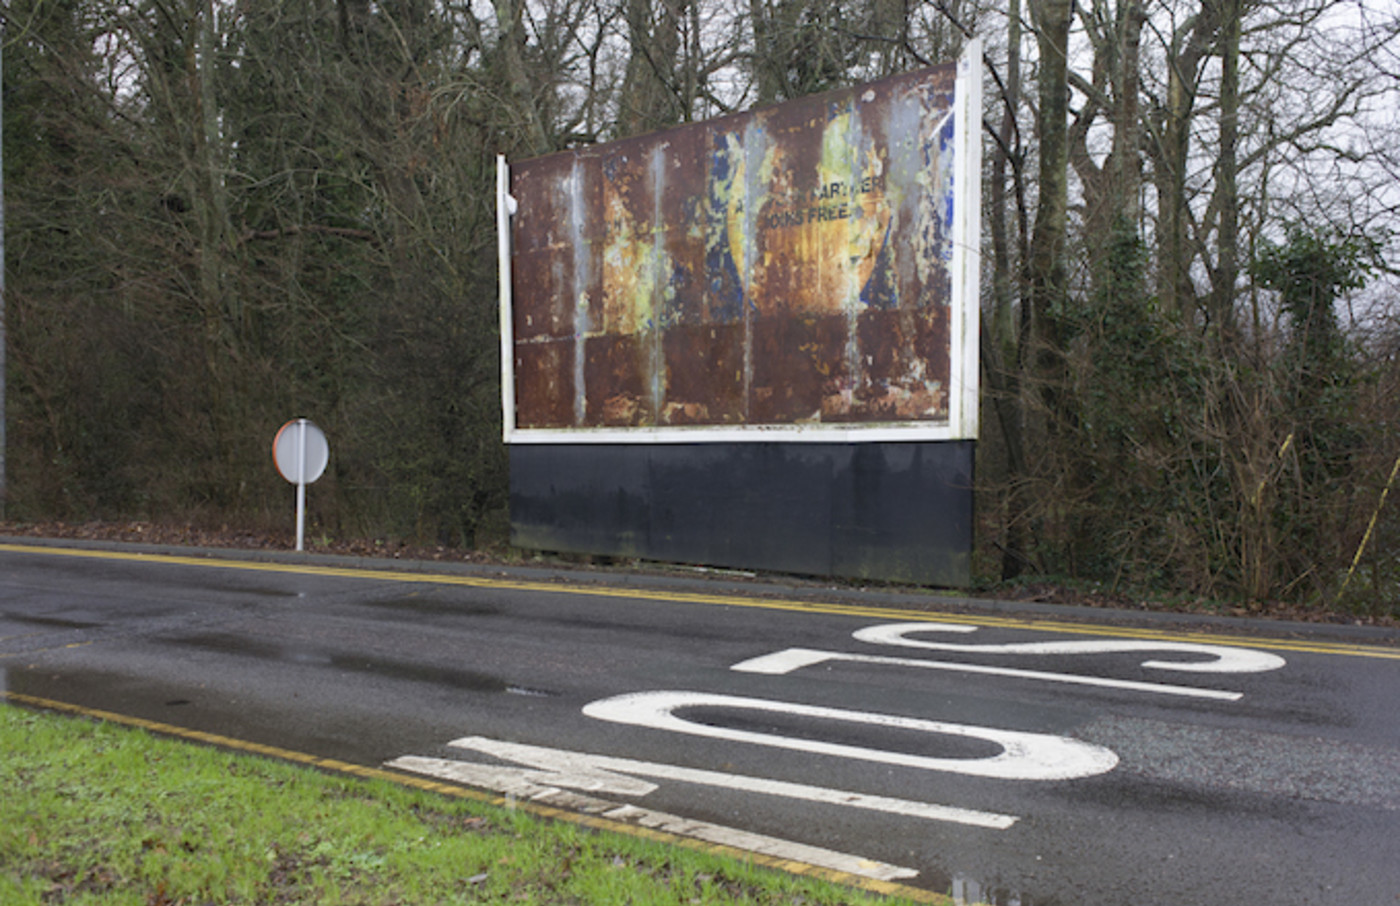 Rusting billboard showing a faded advert landscape at the Reading Services on the M4 motorway